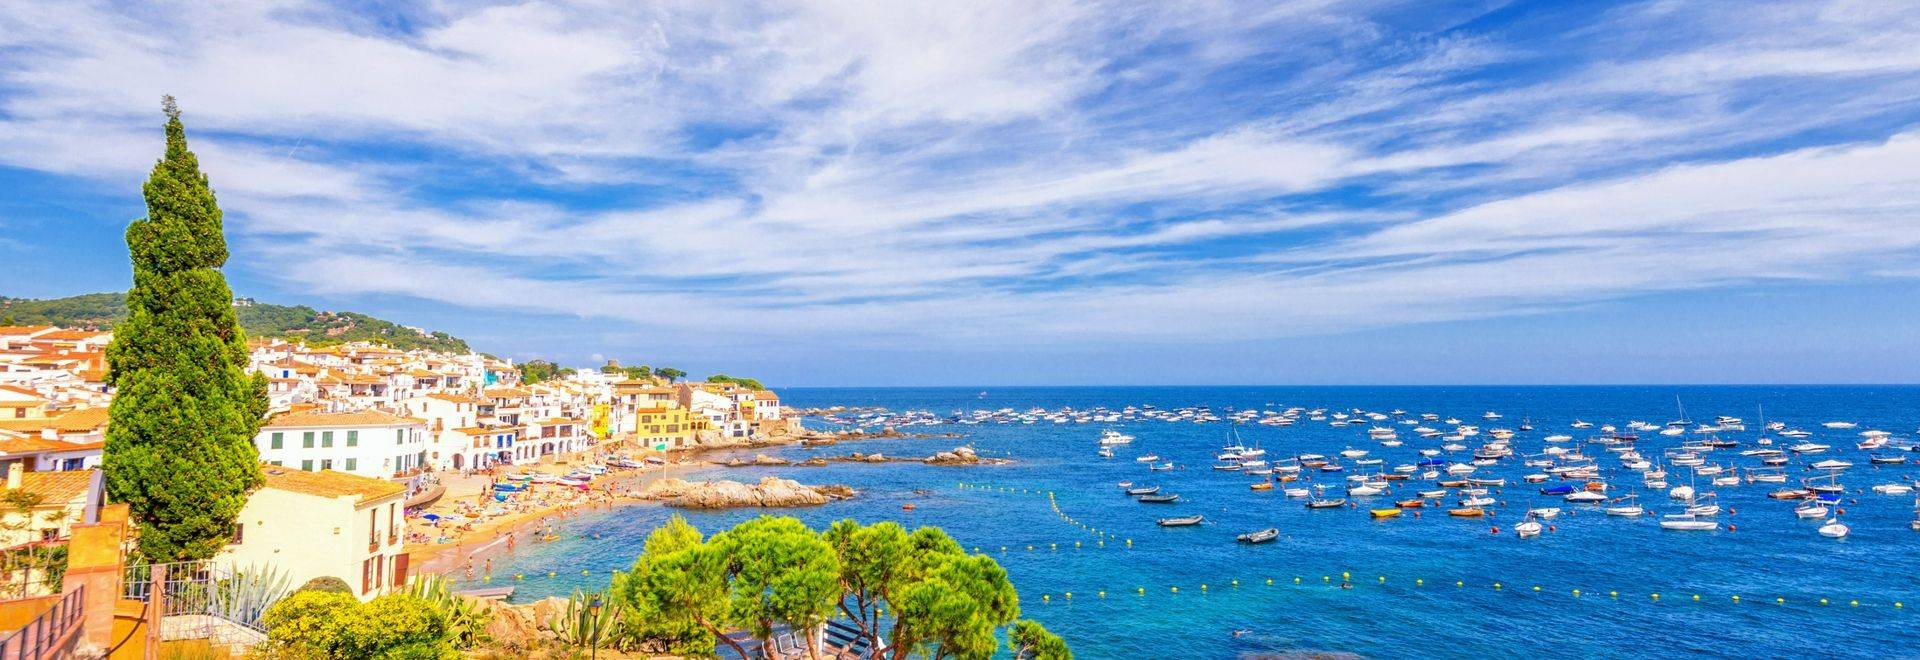 View over Calella de Palafrugell, a beautiful coastal town in the municipality of Palafrugell (province Girona) at the Costa…